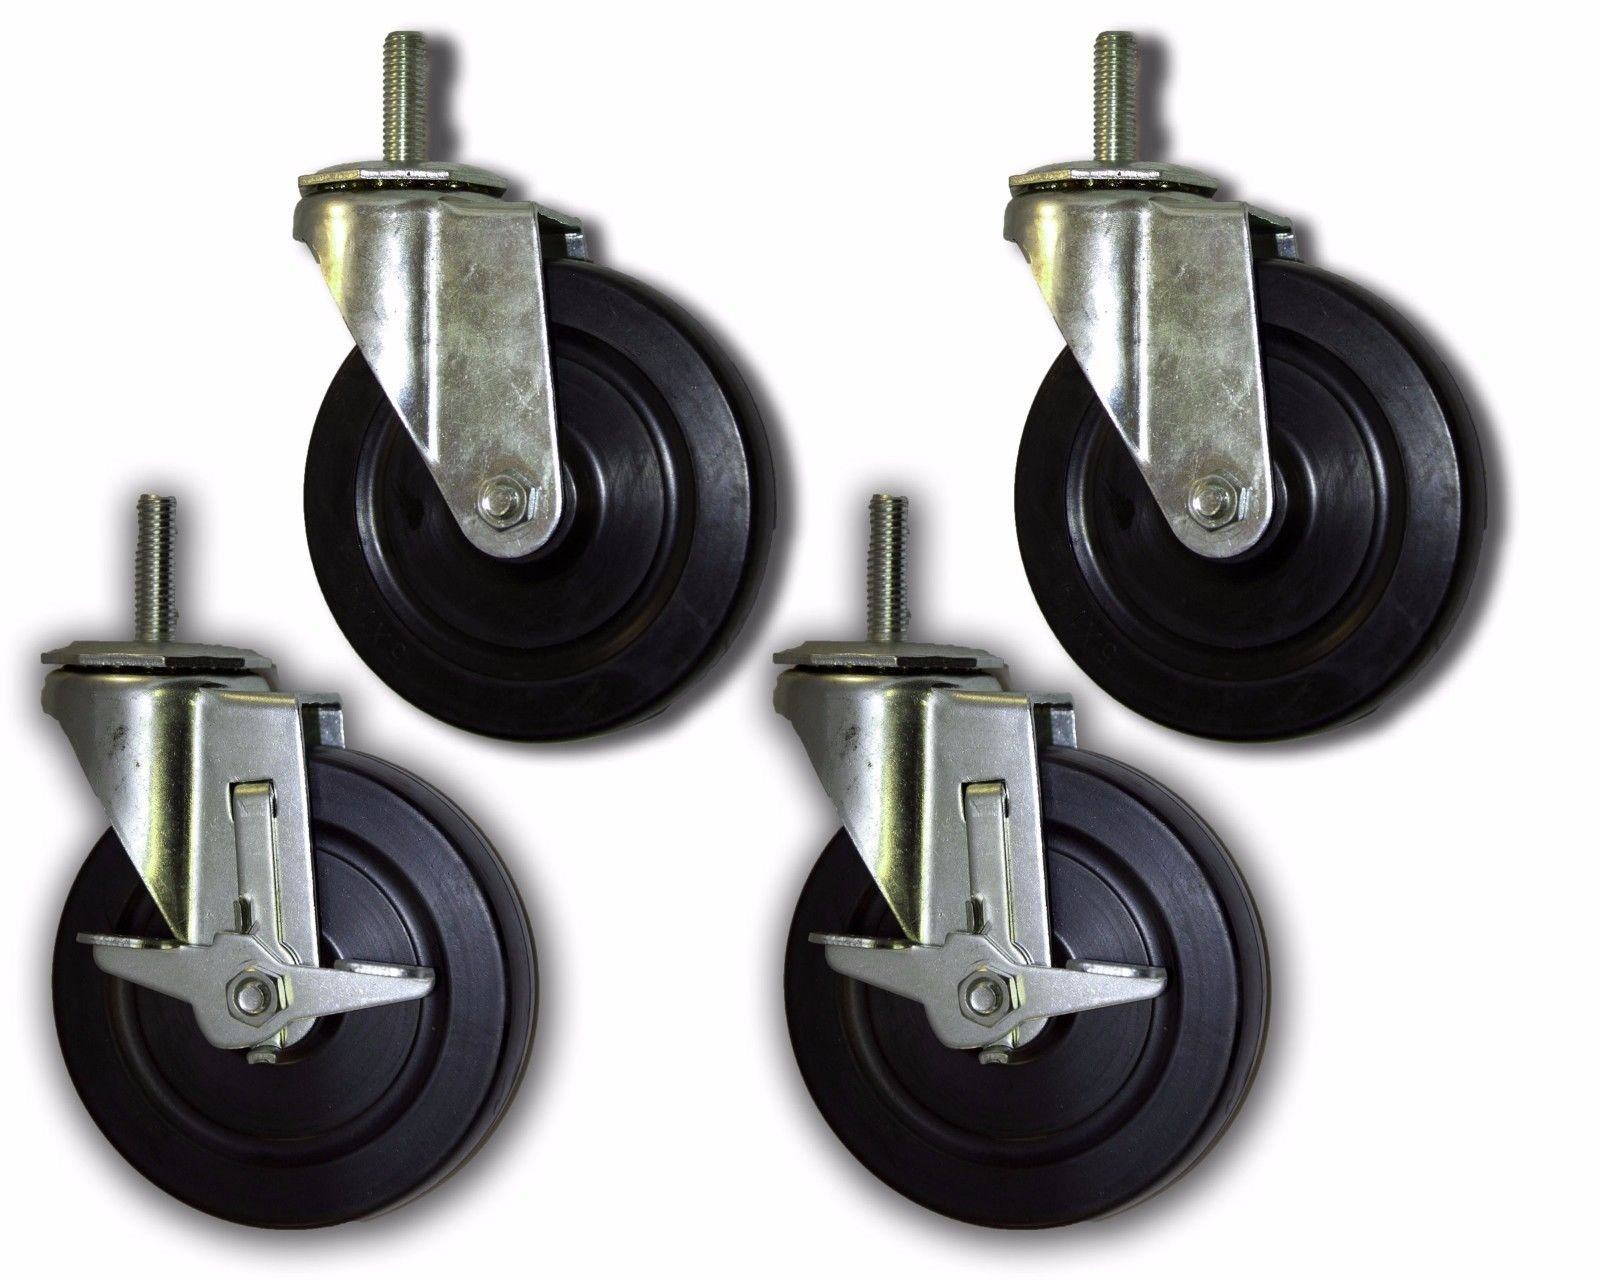 5'' Rubber Caster with 1/2'' x 1-1/2'' Threaded Stem (4 Pack)